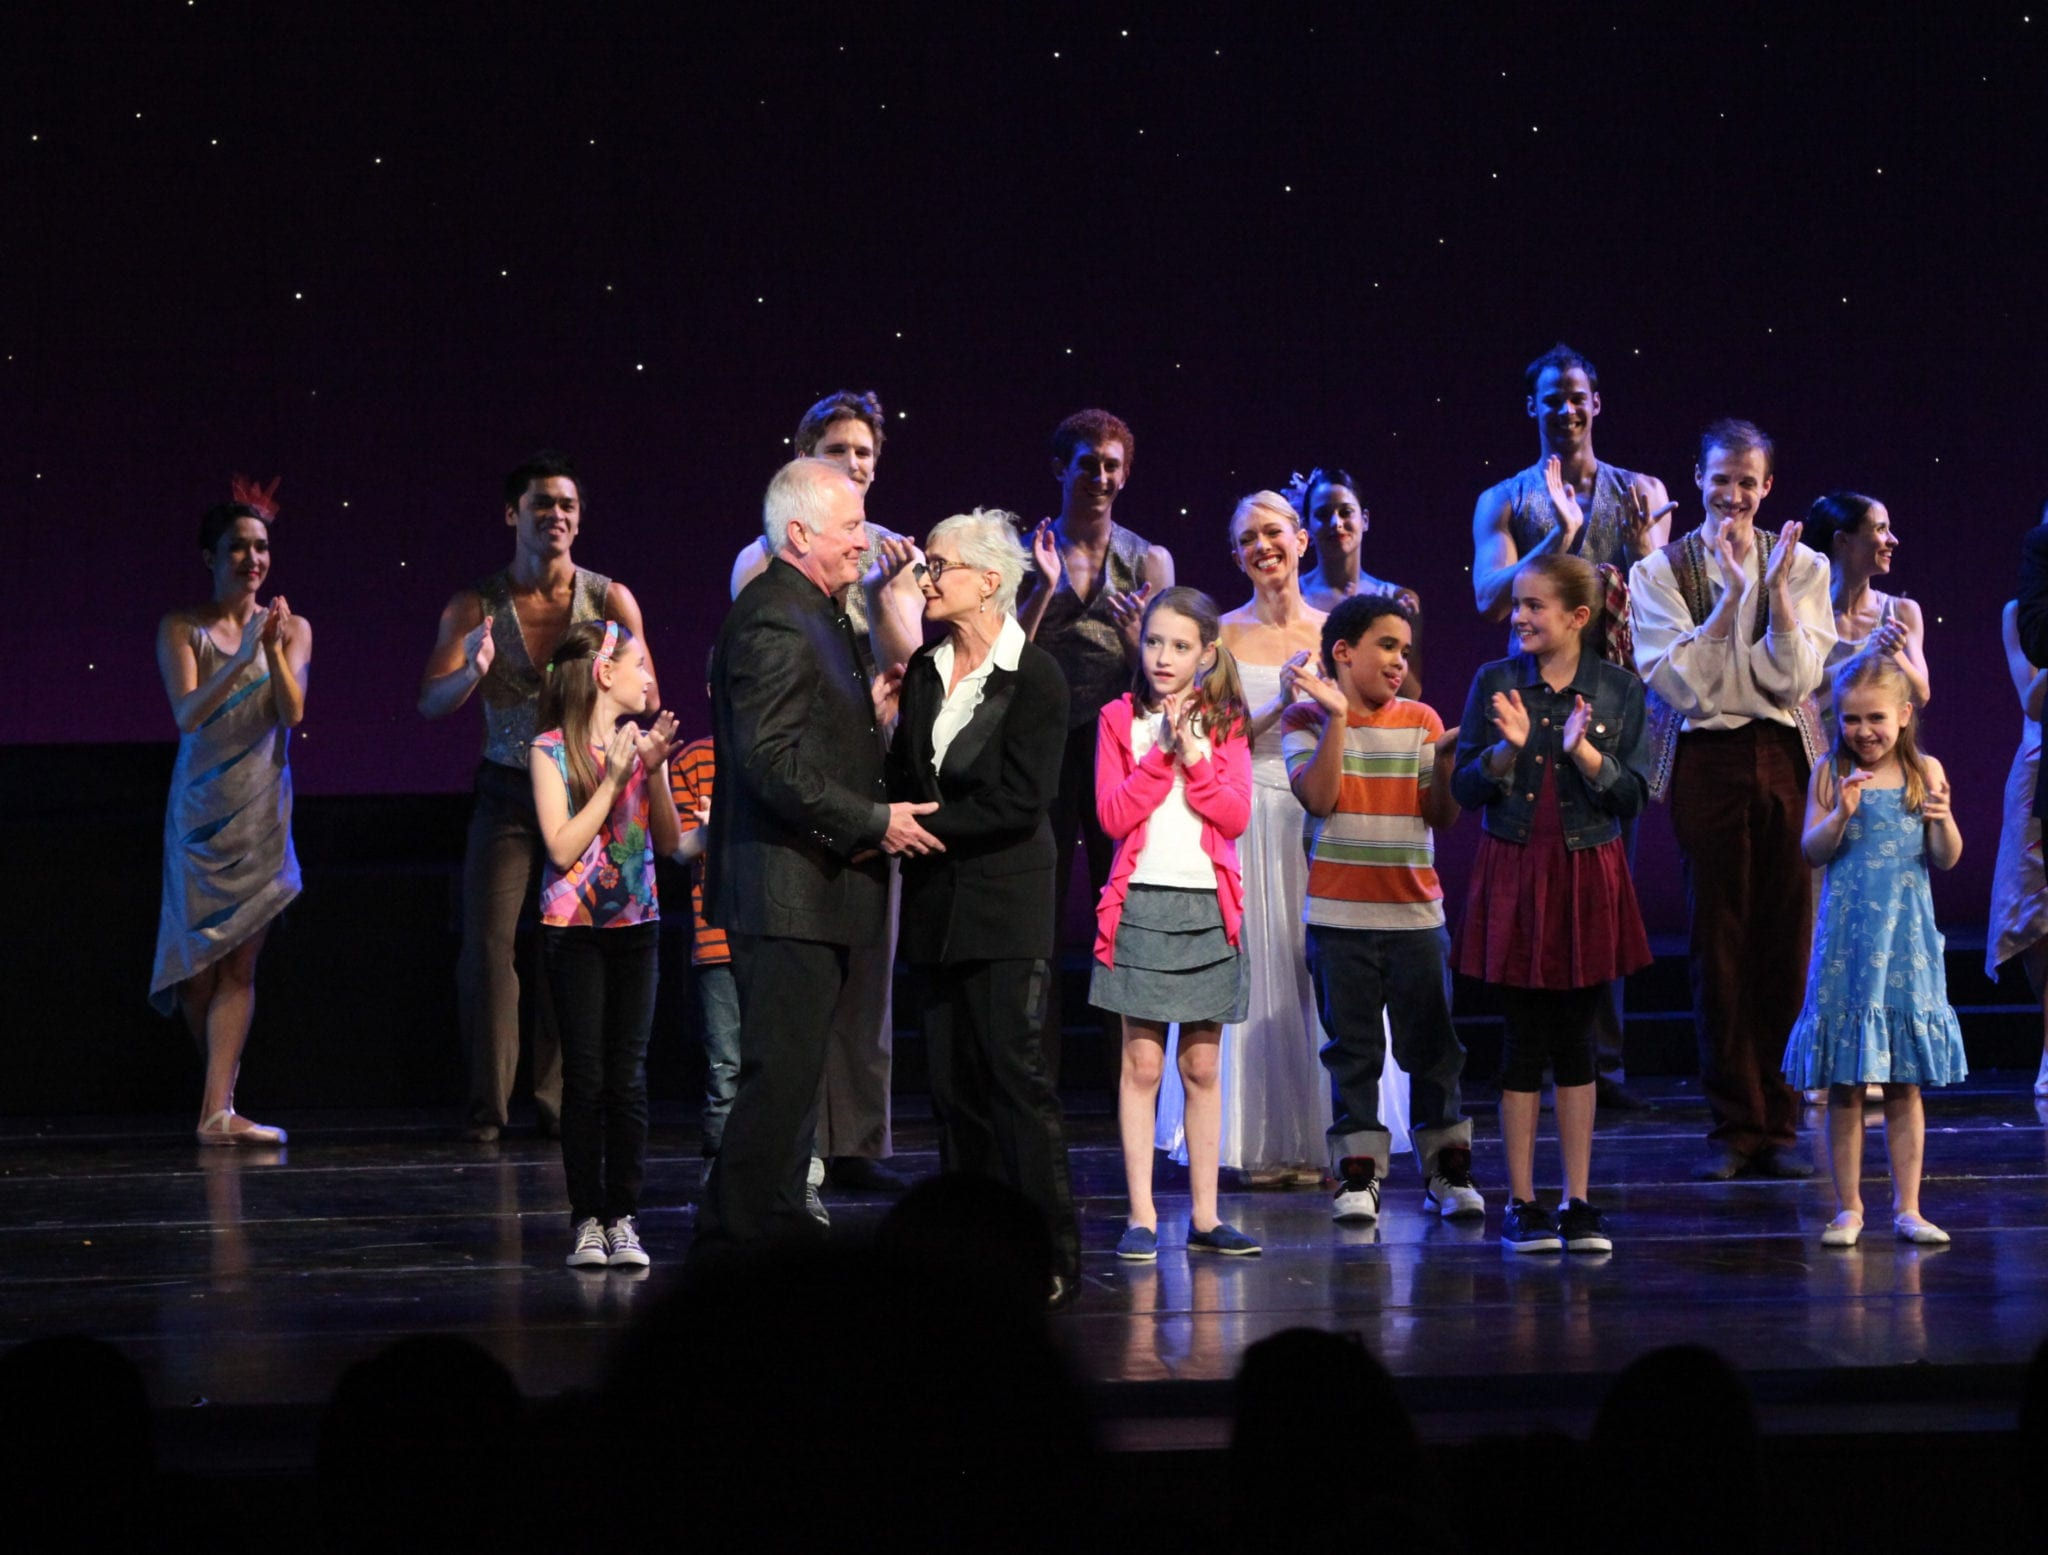 McFall and Tharp at the curtain call for The Princess and the Goblin. (Photo by Charlie McCullers)